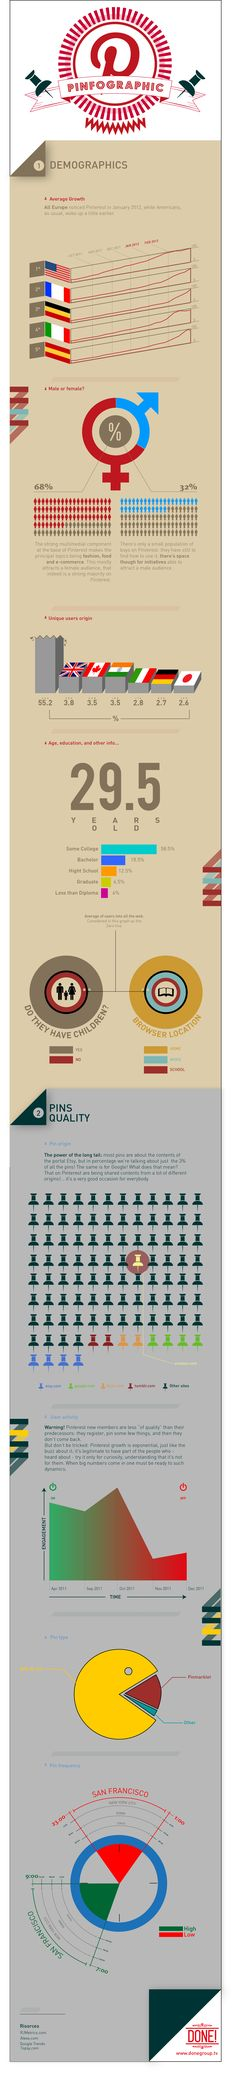 pinfographic: pin quality, statistics and figures Social Media Content, Social Networks, Social Media Marketing, Digital Marketing, Online Marketing, Content Marketing, Infographic Templates, Infographics, Creative Infographic